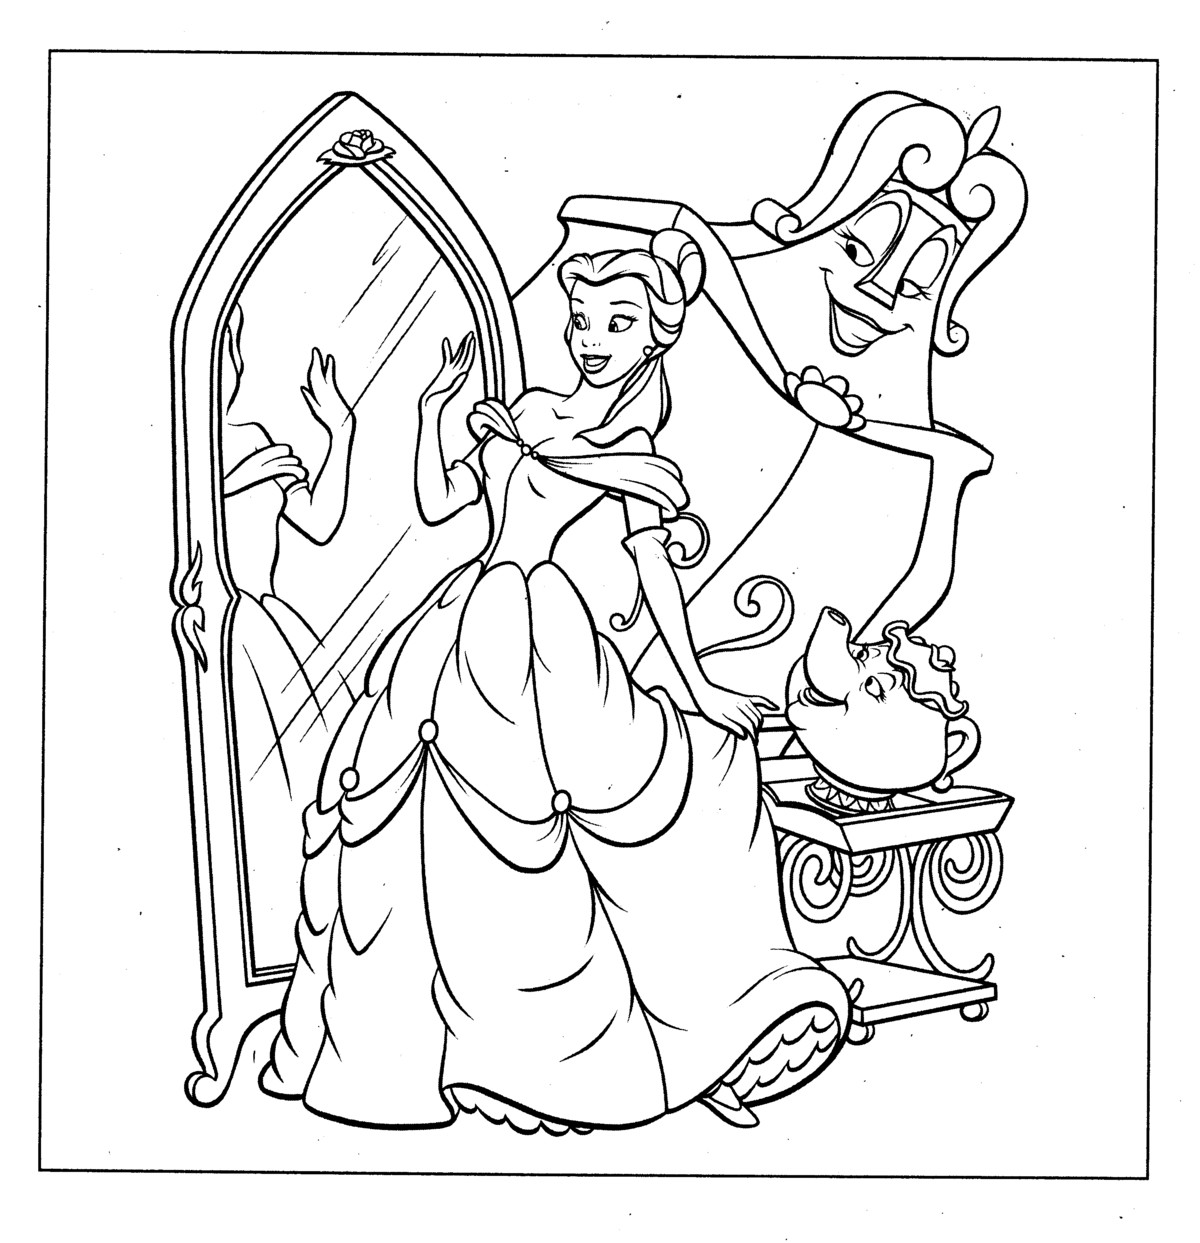 coloring disney characters pictures to colour disney coloring pages best coloring pages for kids to pictures disney coloring colour characters